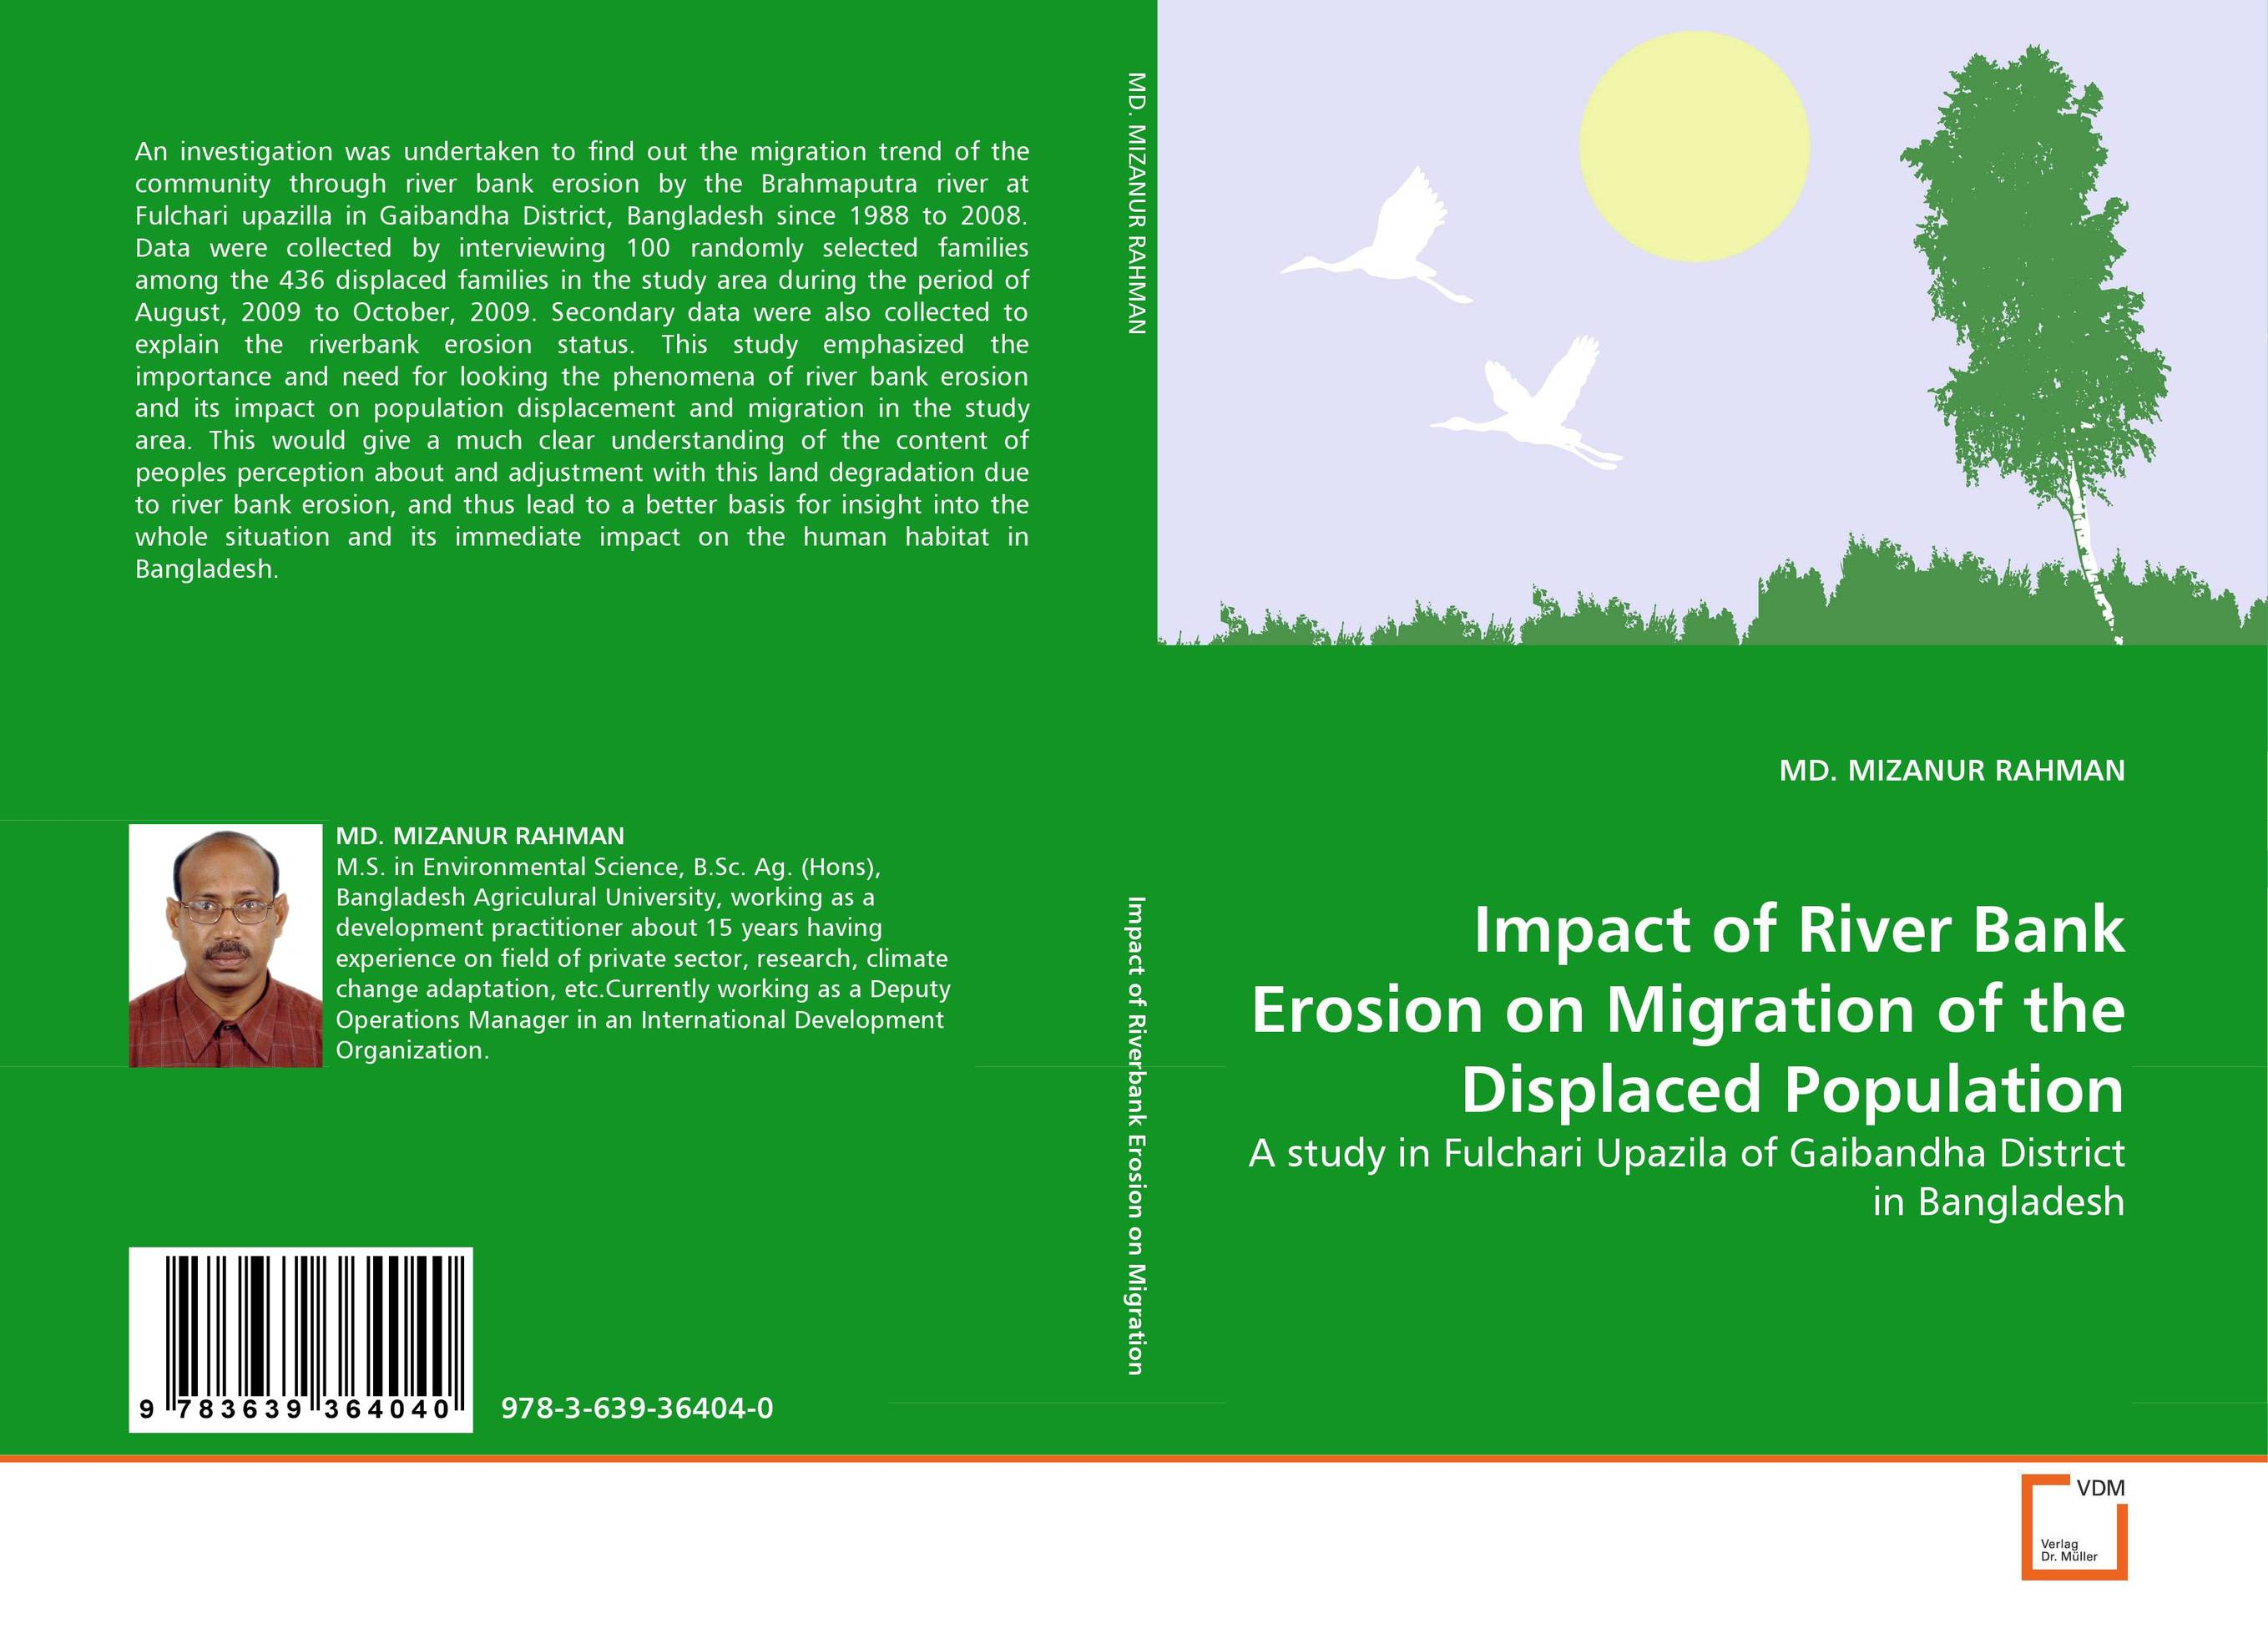 Impact of River Bank Erosion on Migration of the Displaced Population swarna ukwatta impact of female transnational migration on families in sri lanka